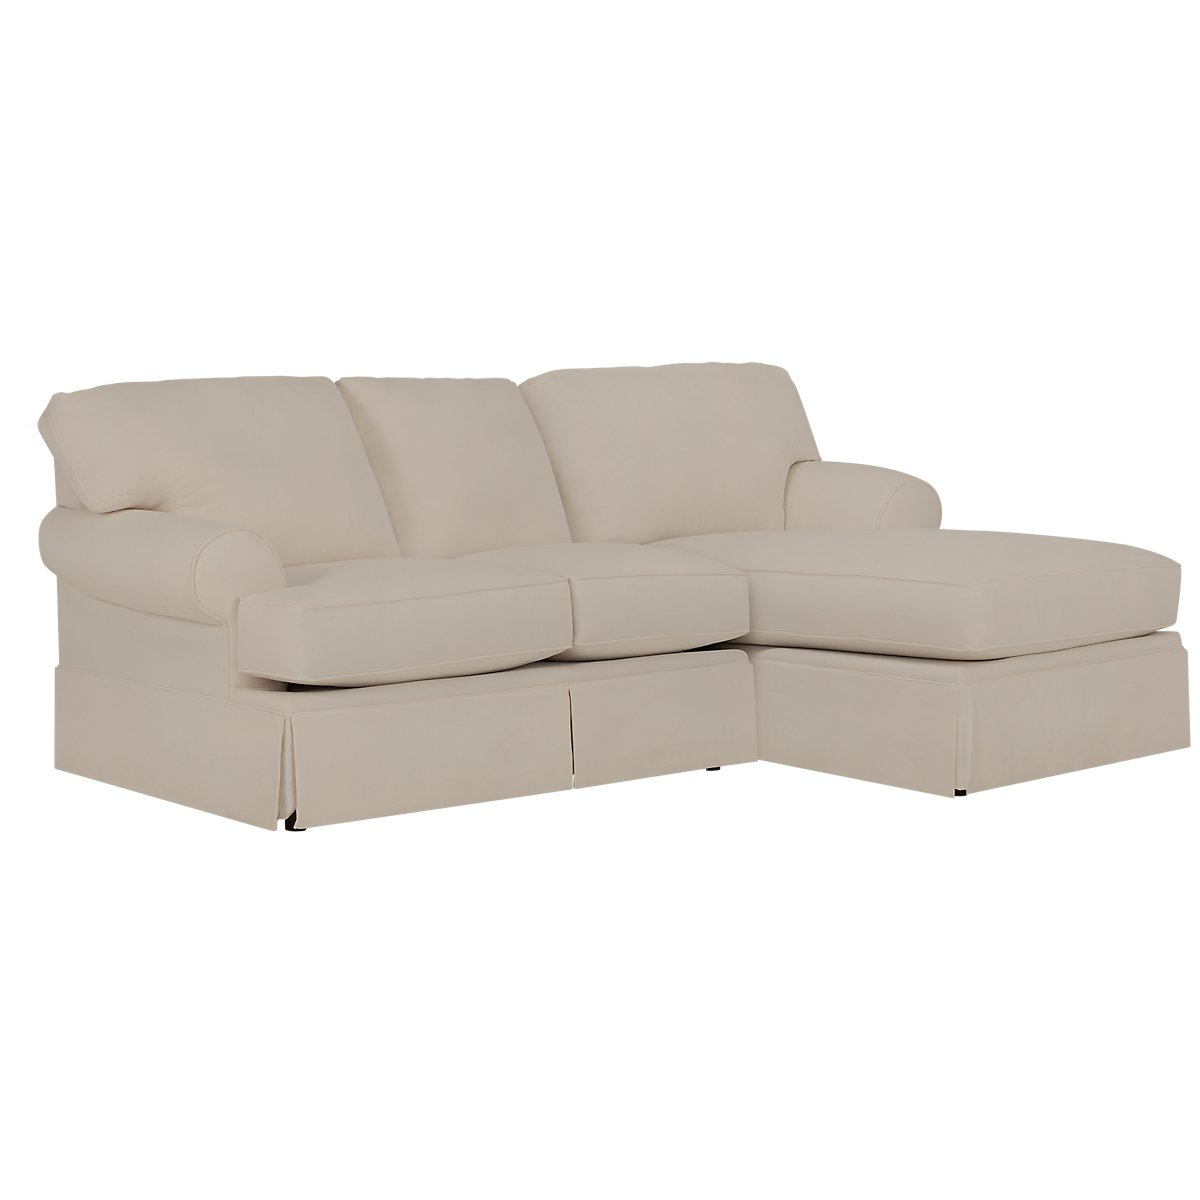 City furniture turner khaki fabric right chaise sectional for Chaise kaki